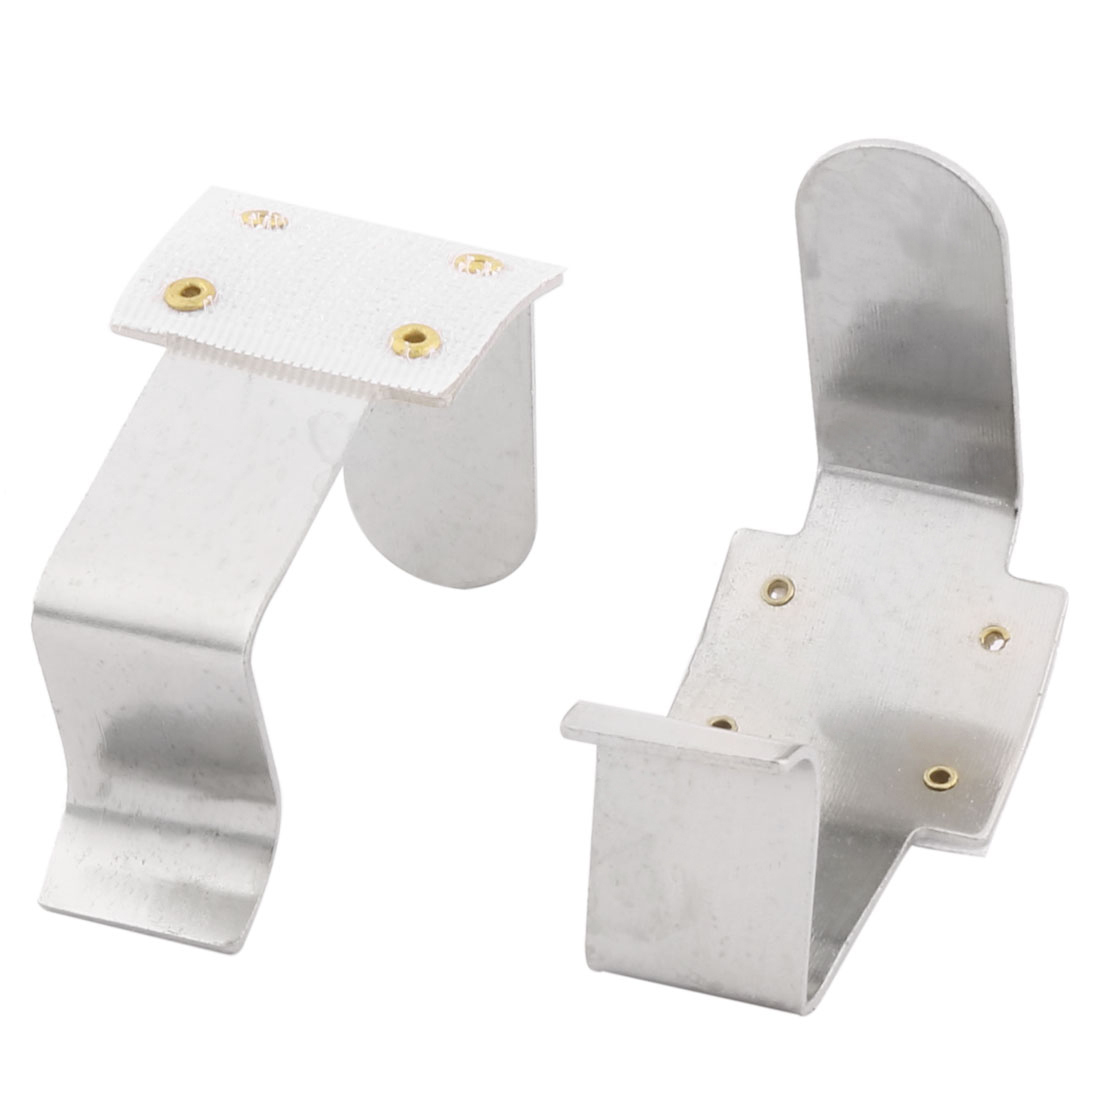 Home Hotel Metal Tablecloth Desk Table Cover Fastener Clamp Clip Silver Tone 2 Pcs